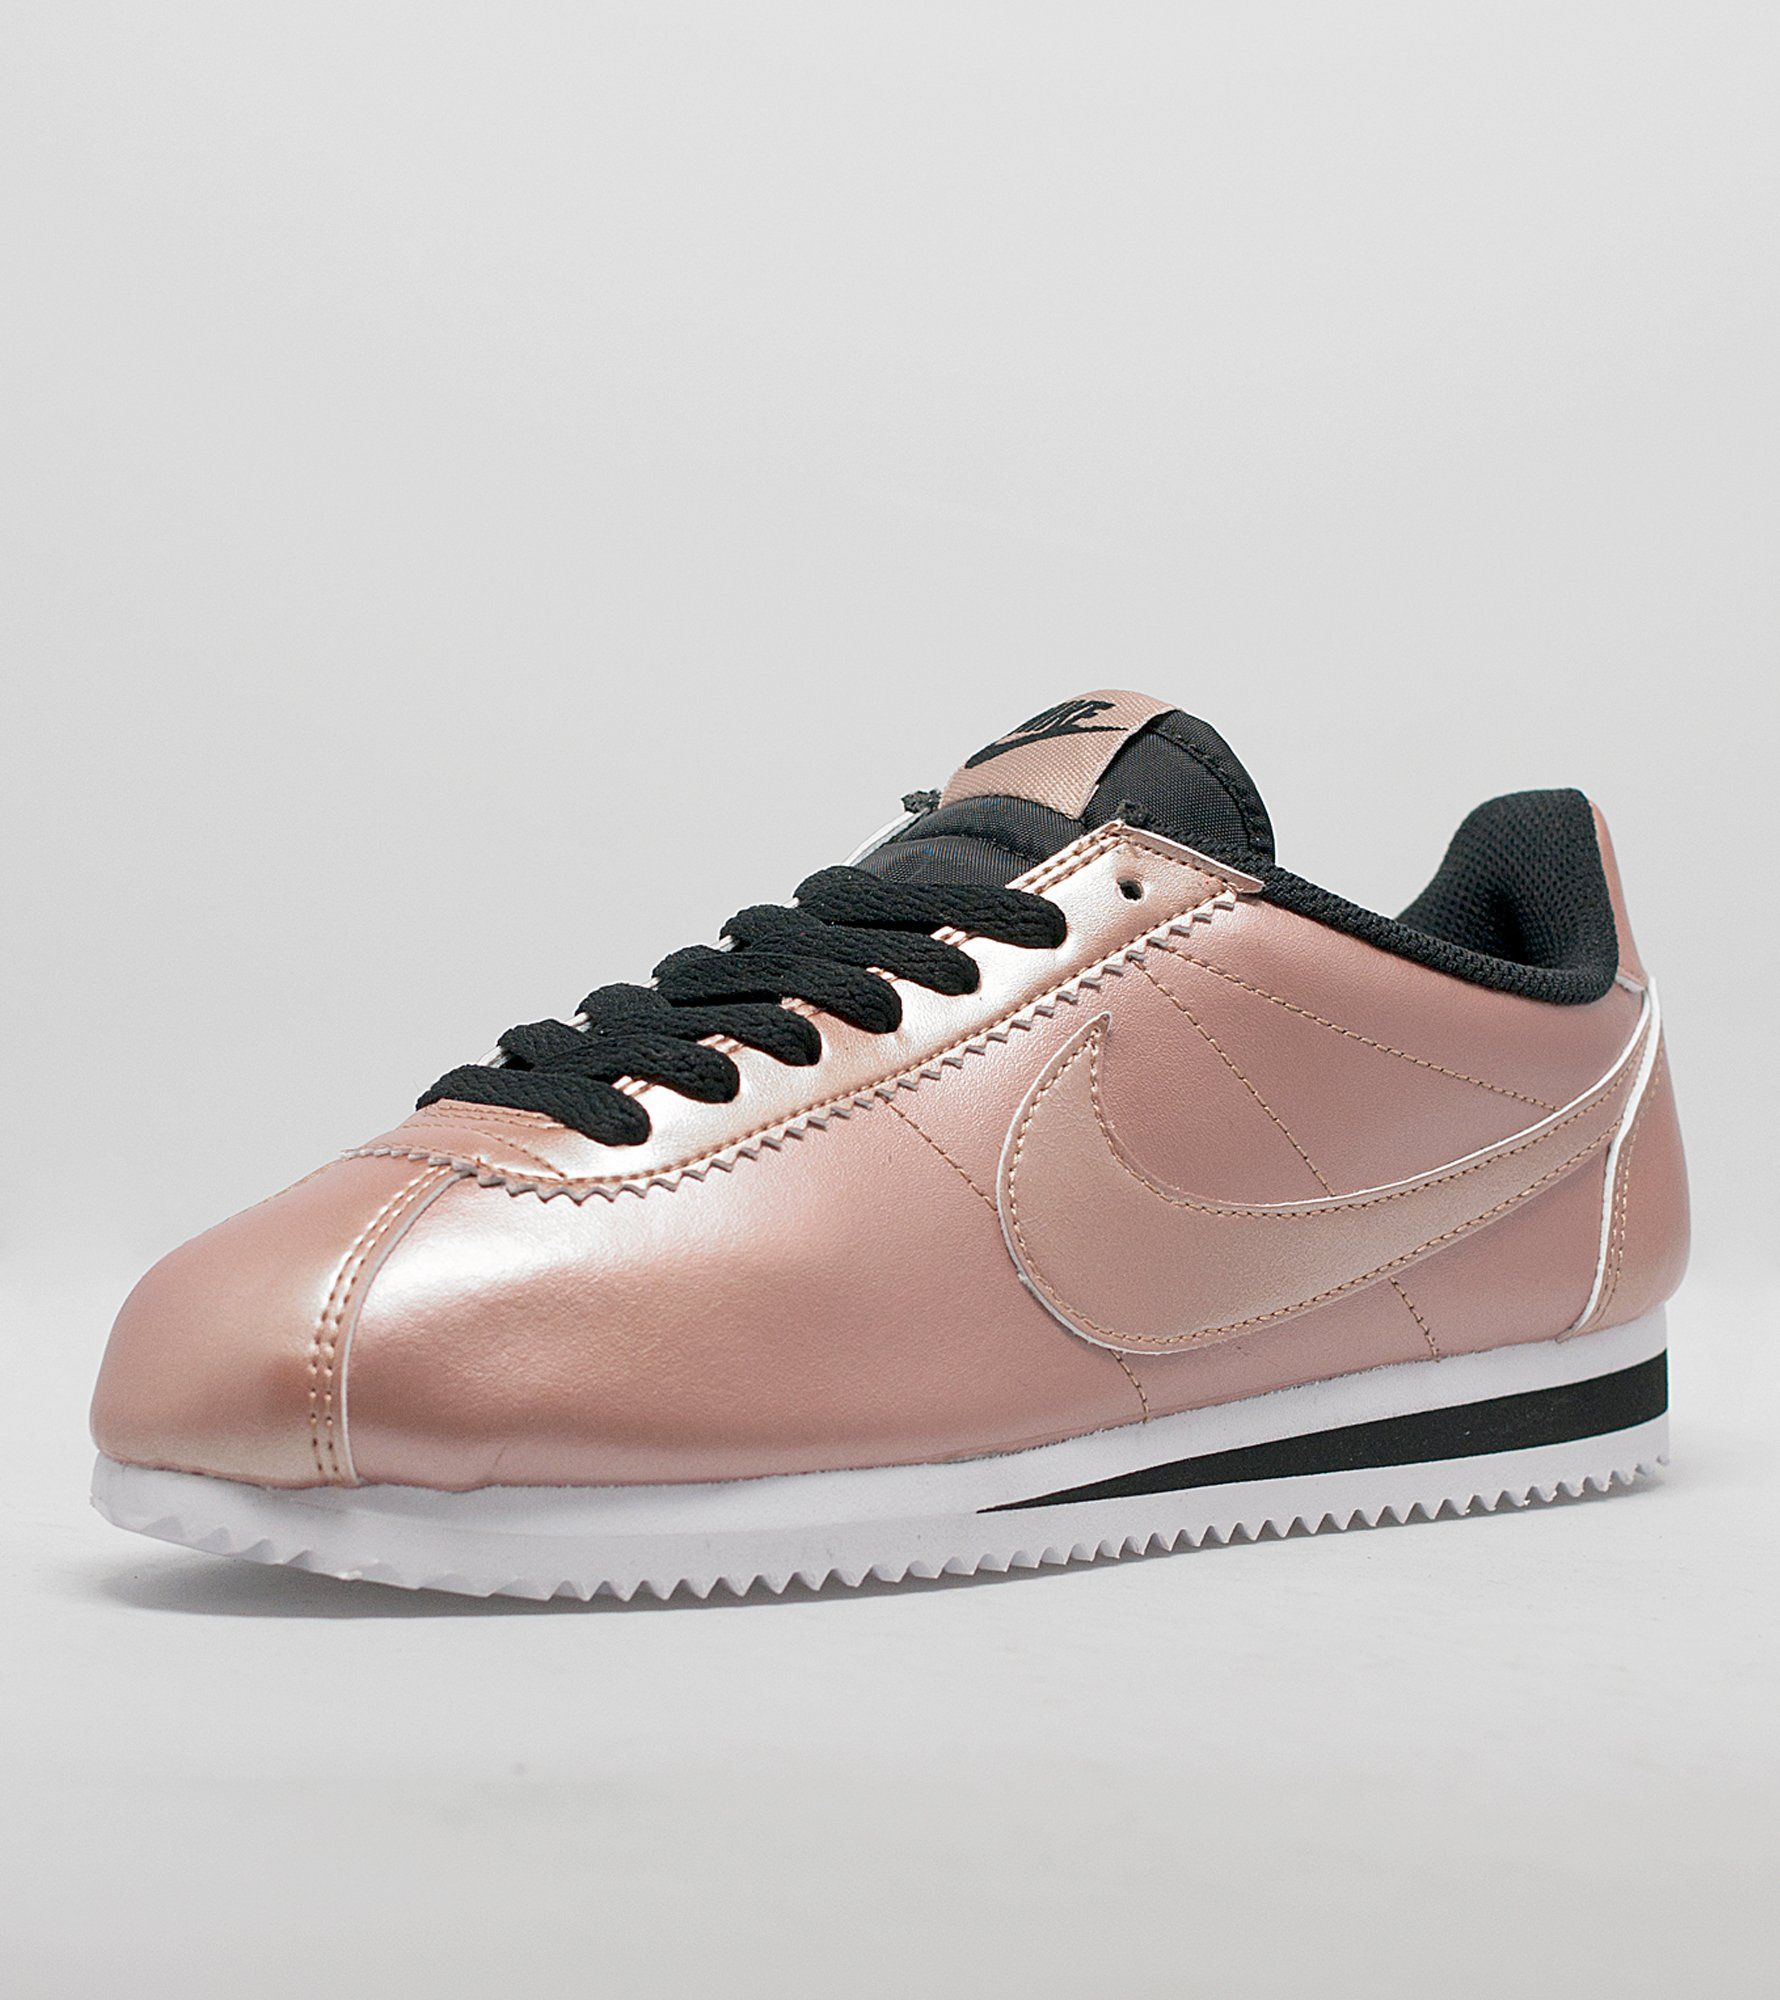 low cost 1e991 362fd Nike Cortez Leather Womens  Size